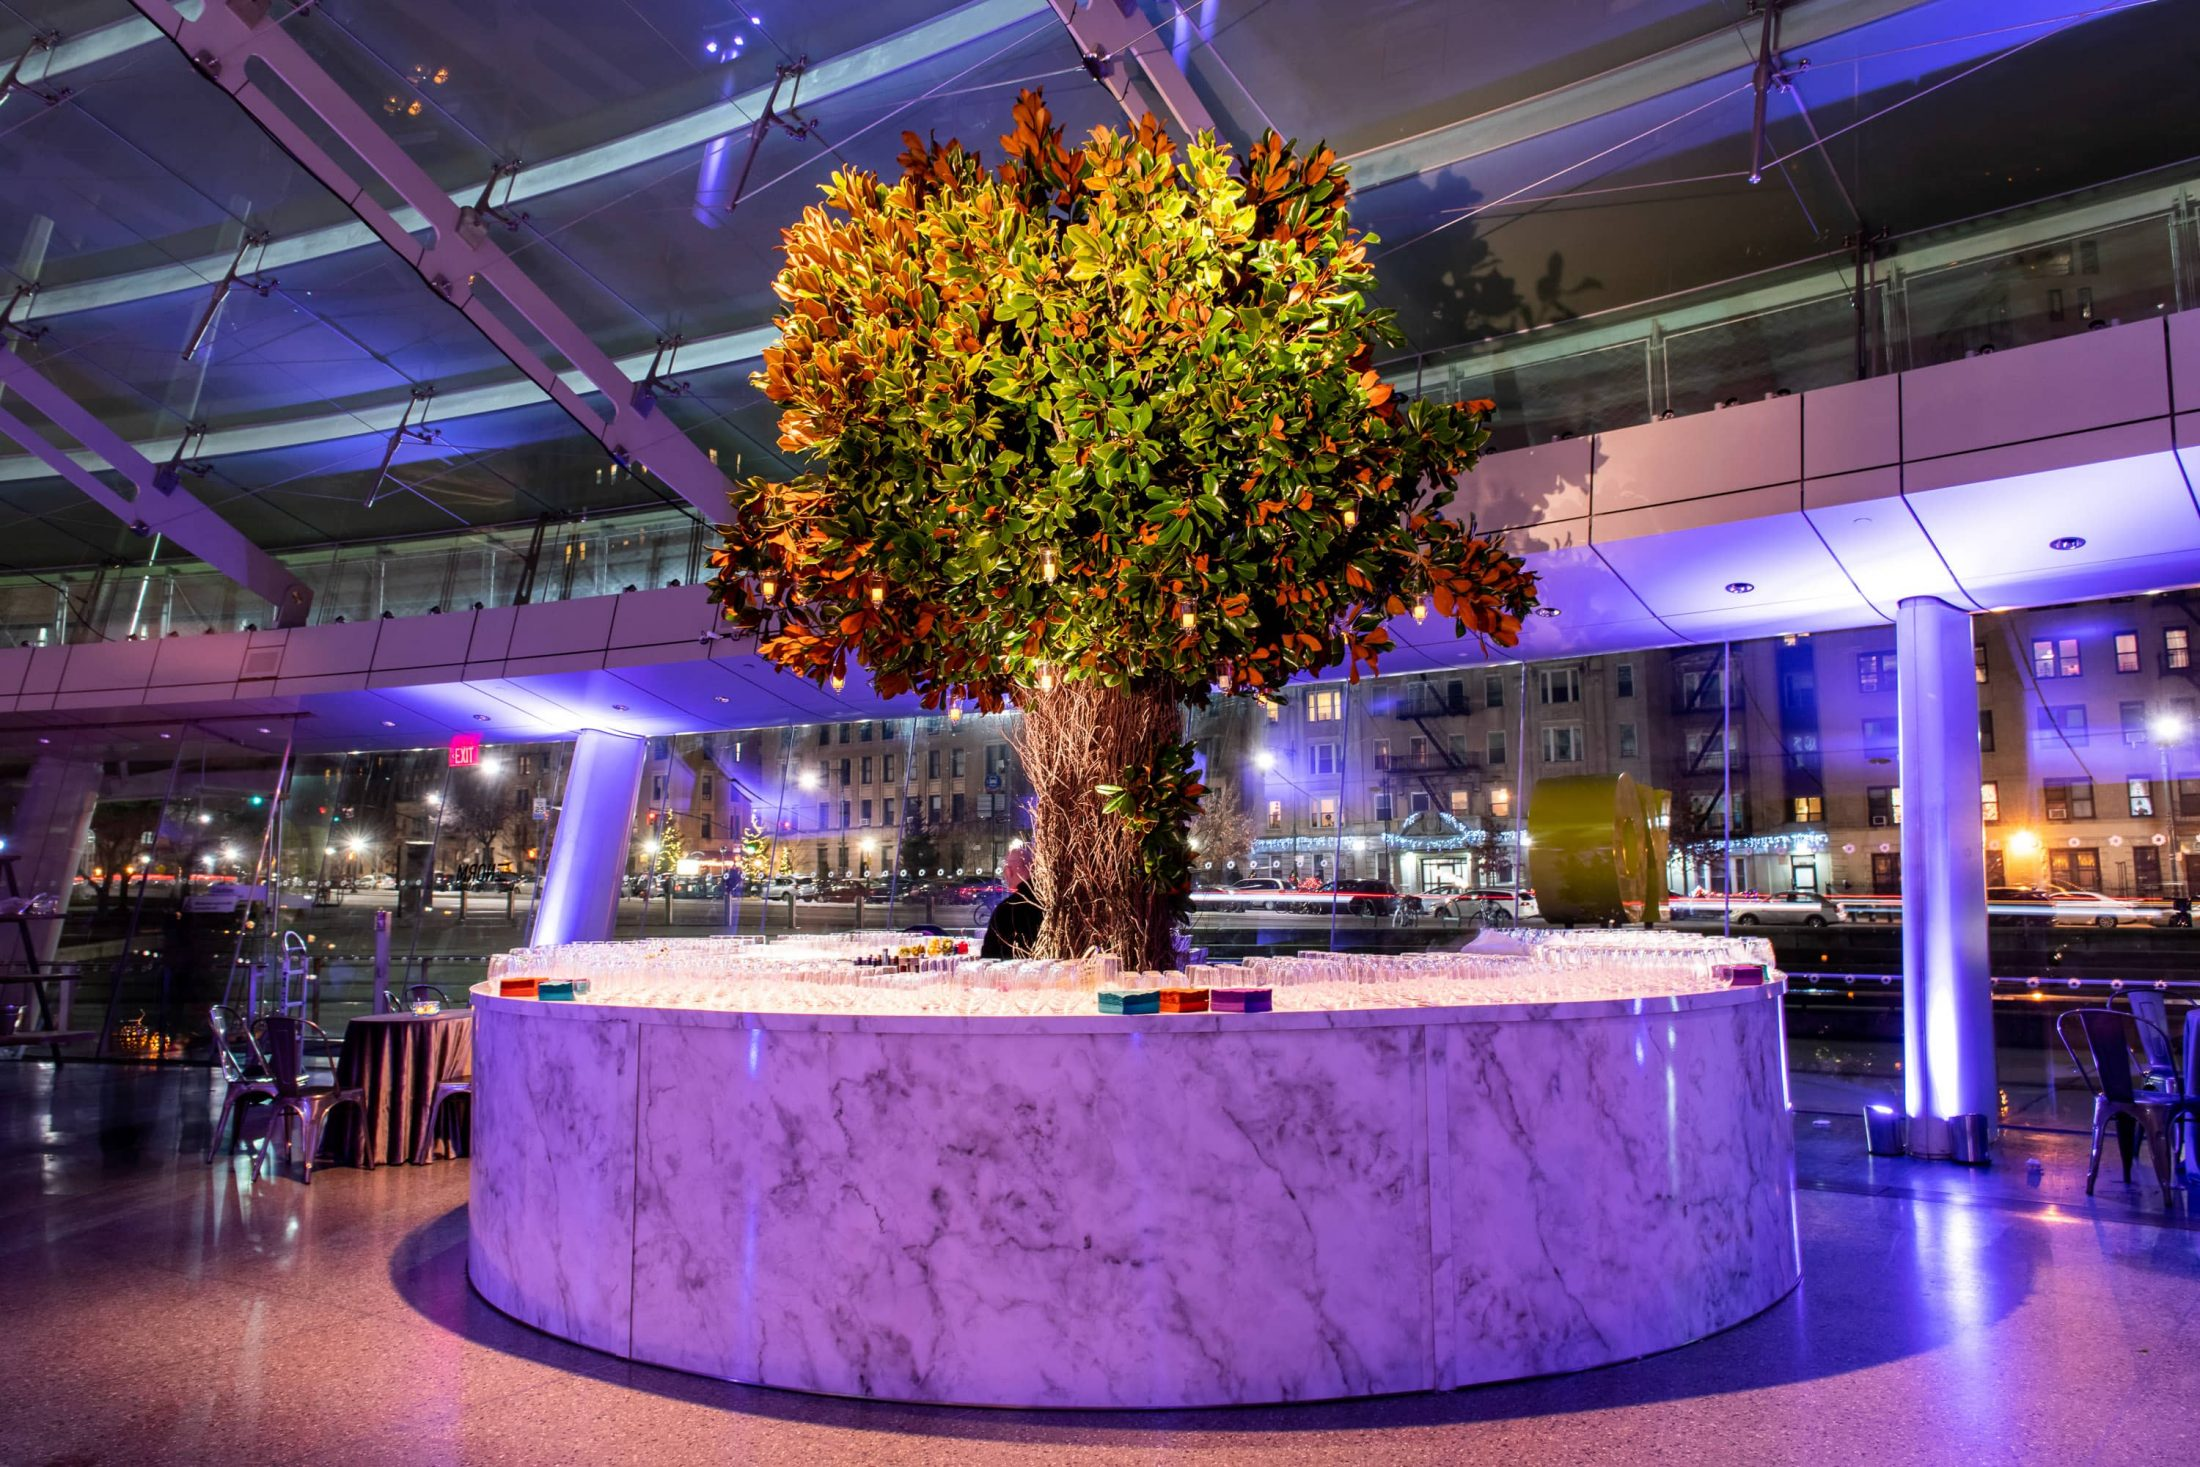 Giant floral design at drink station at this Brooklyn Museum rehearsal dinner in NYC | Photo by Gruber Photo